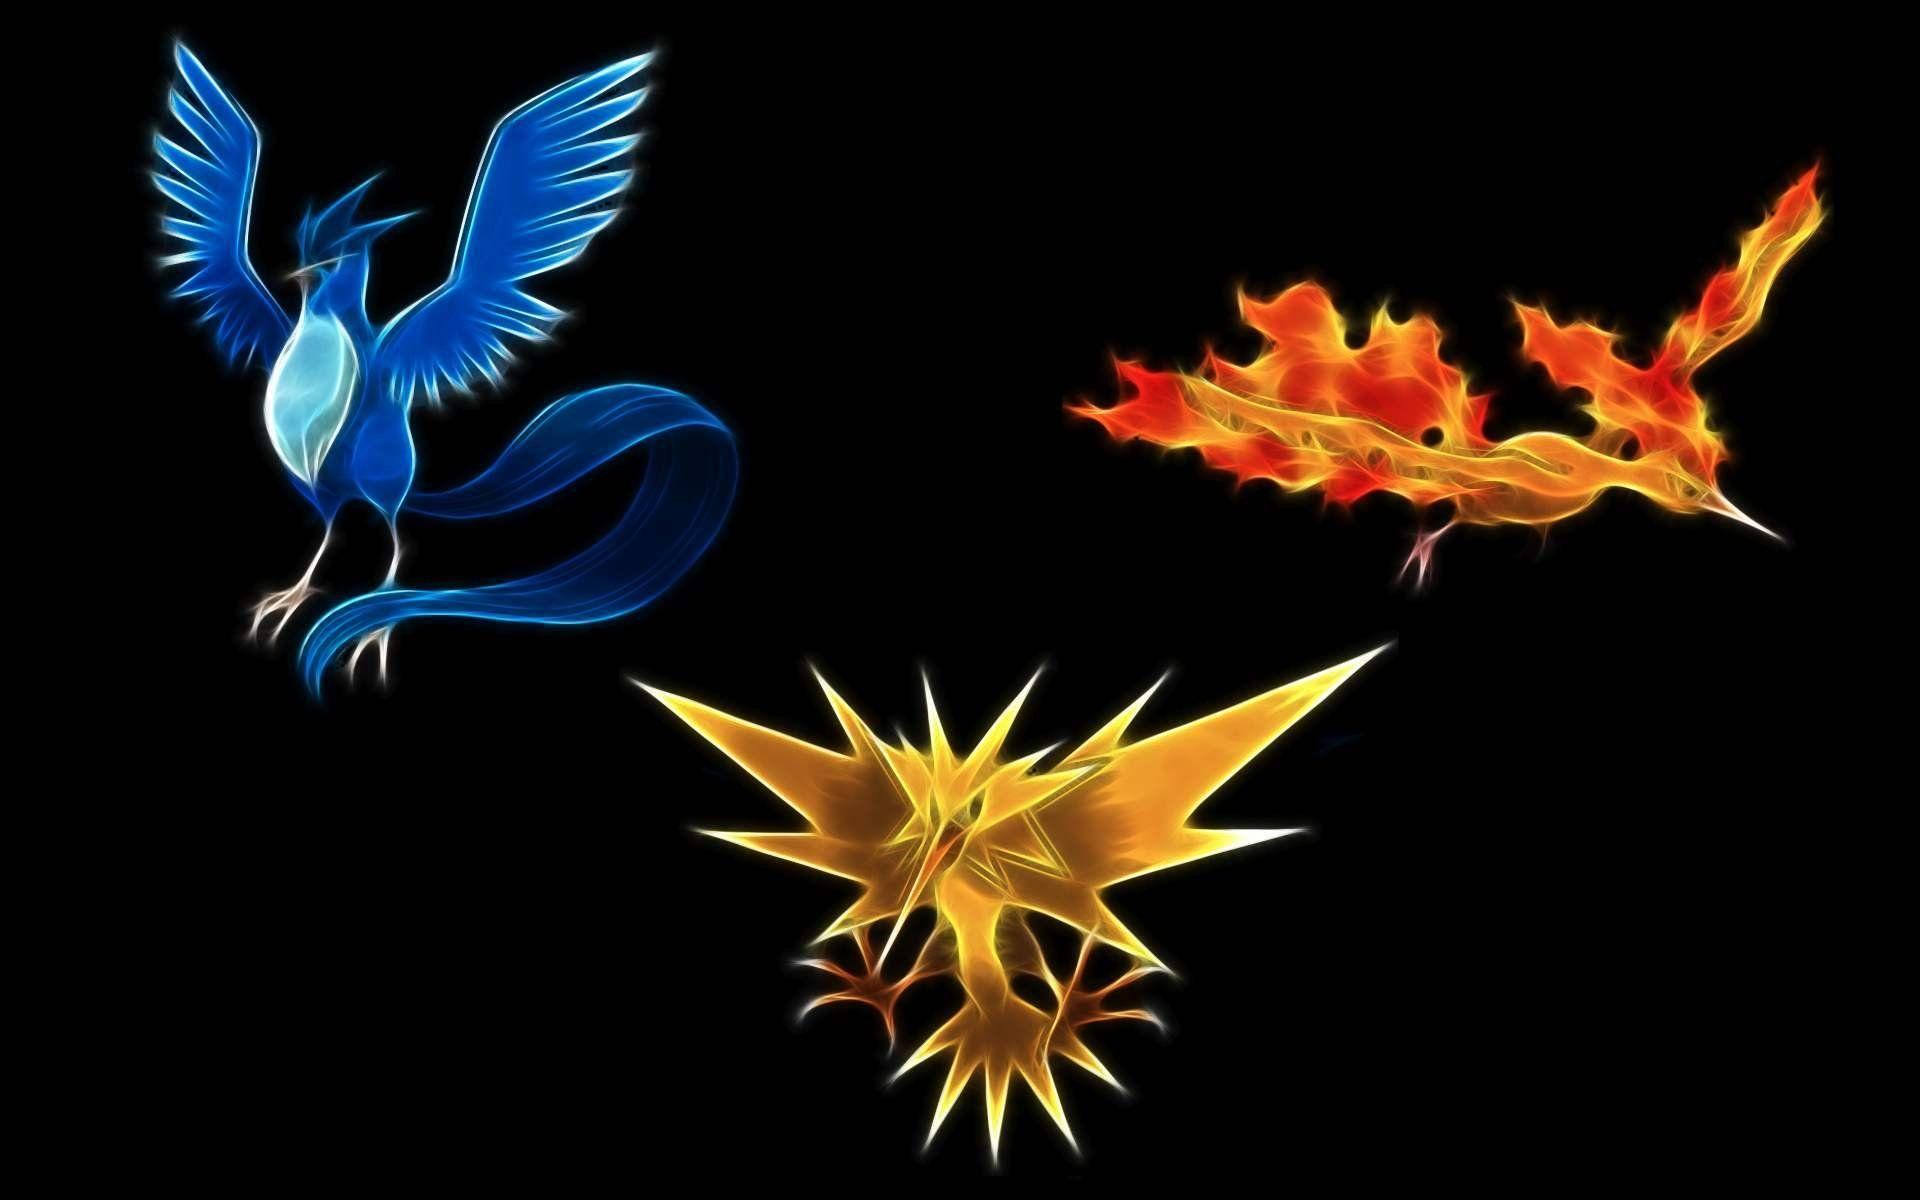 Articuno Zapdos Moltres Wallpapers